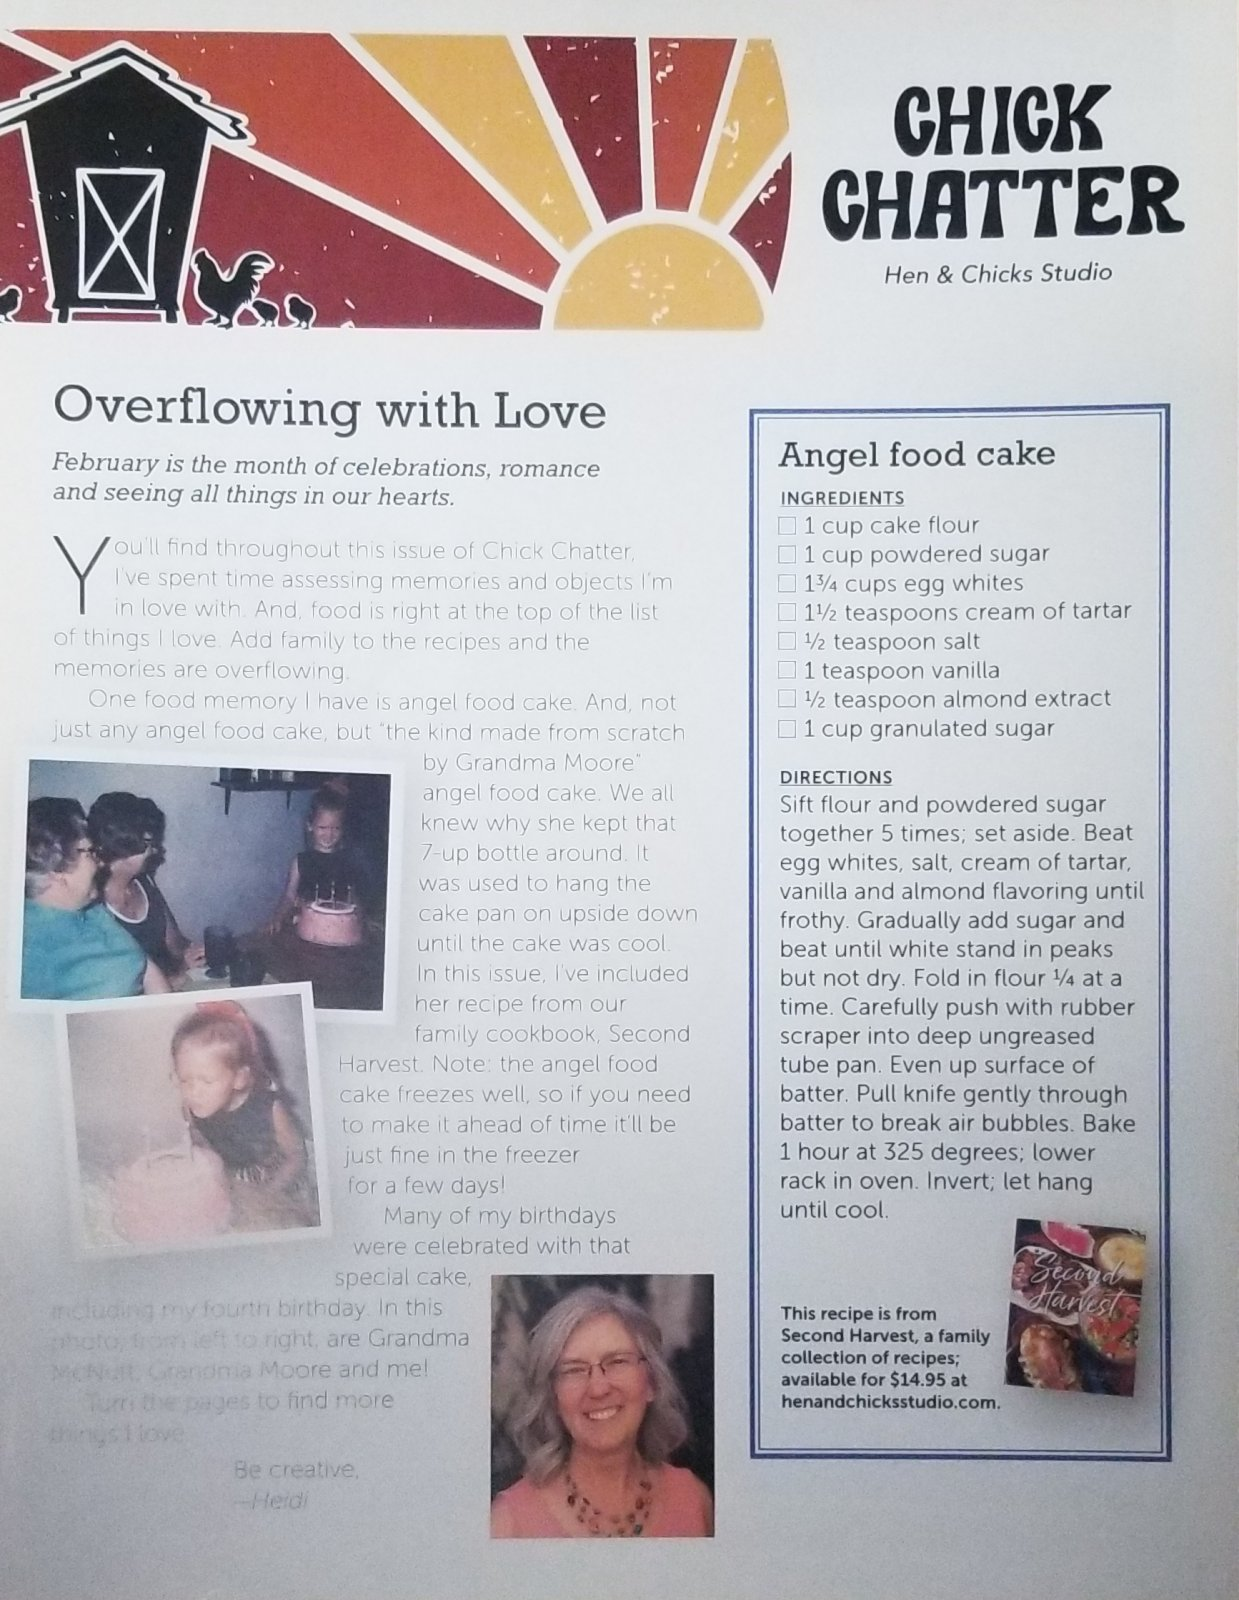 Chick Chatter February 2021